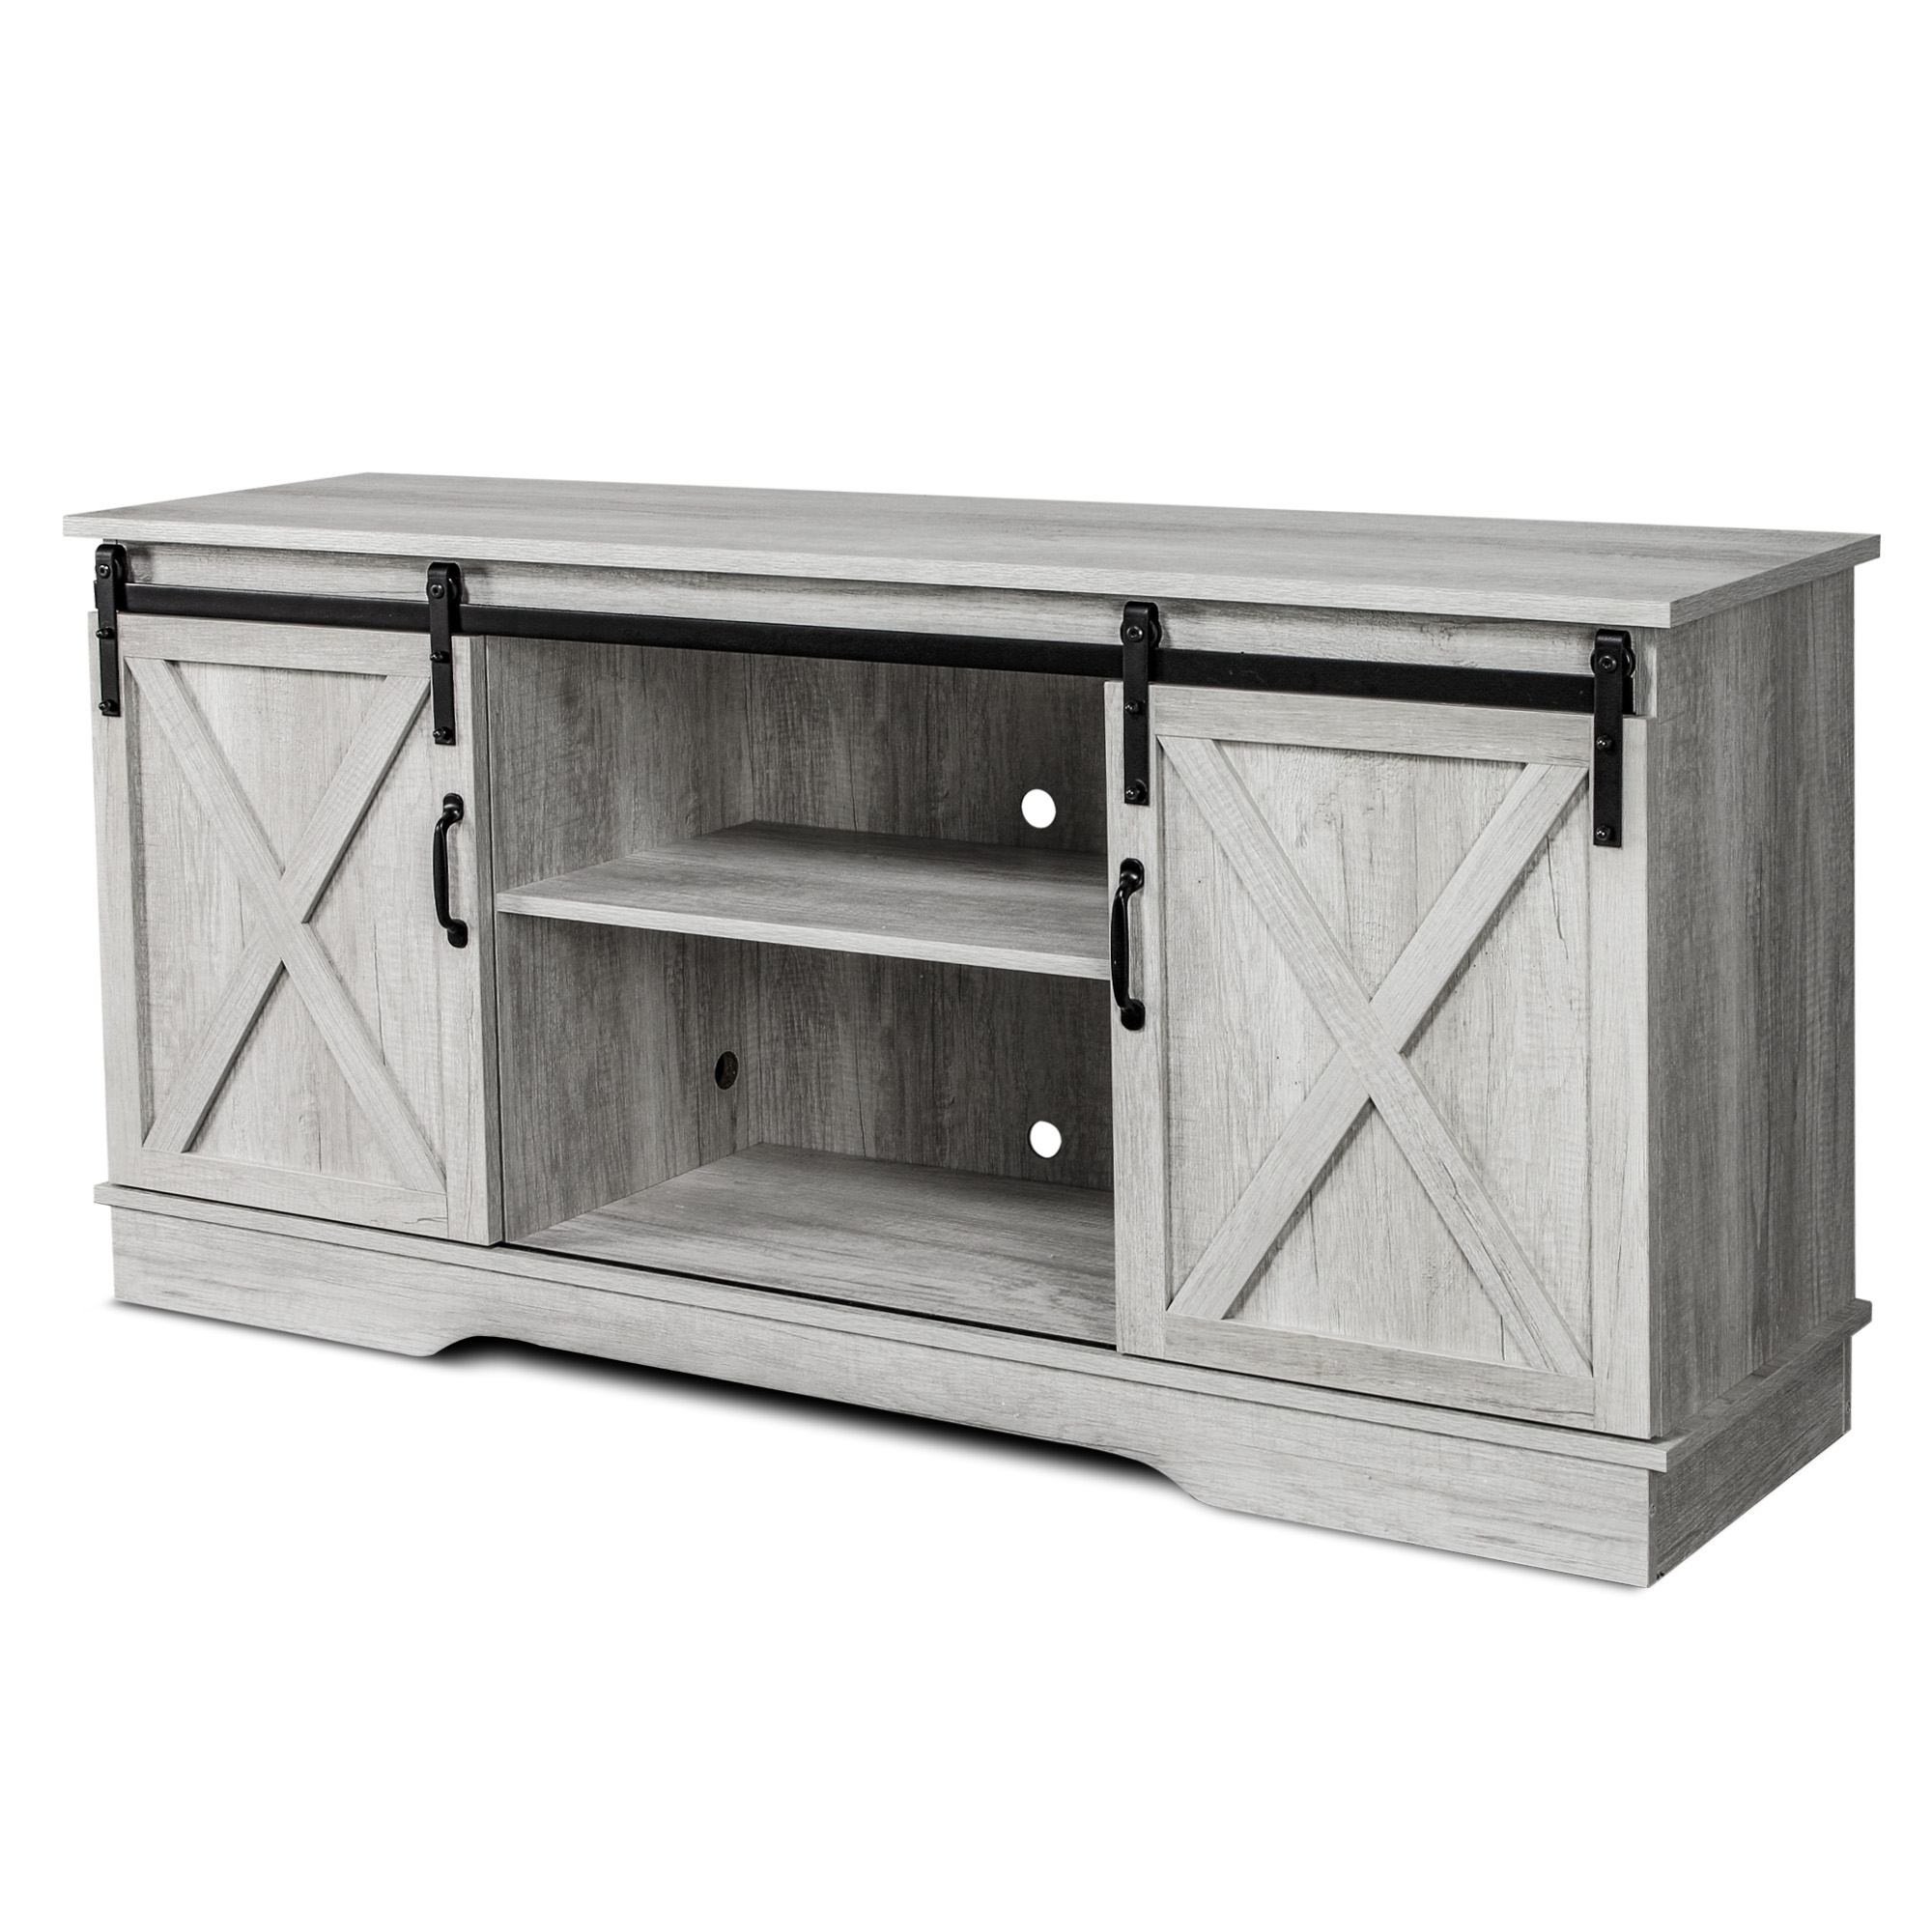 """Modern 58"""" Media Console Sliding Barn Door Television Regarding Modern Farmhouse Style 58"""" Tv Stands With Sliding Barn Door (View 17 of 20)"""